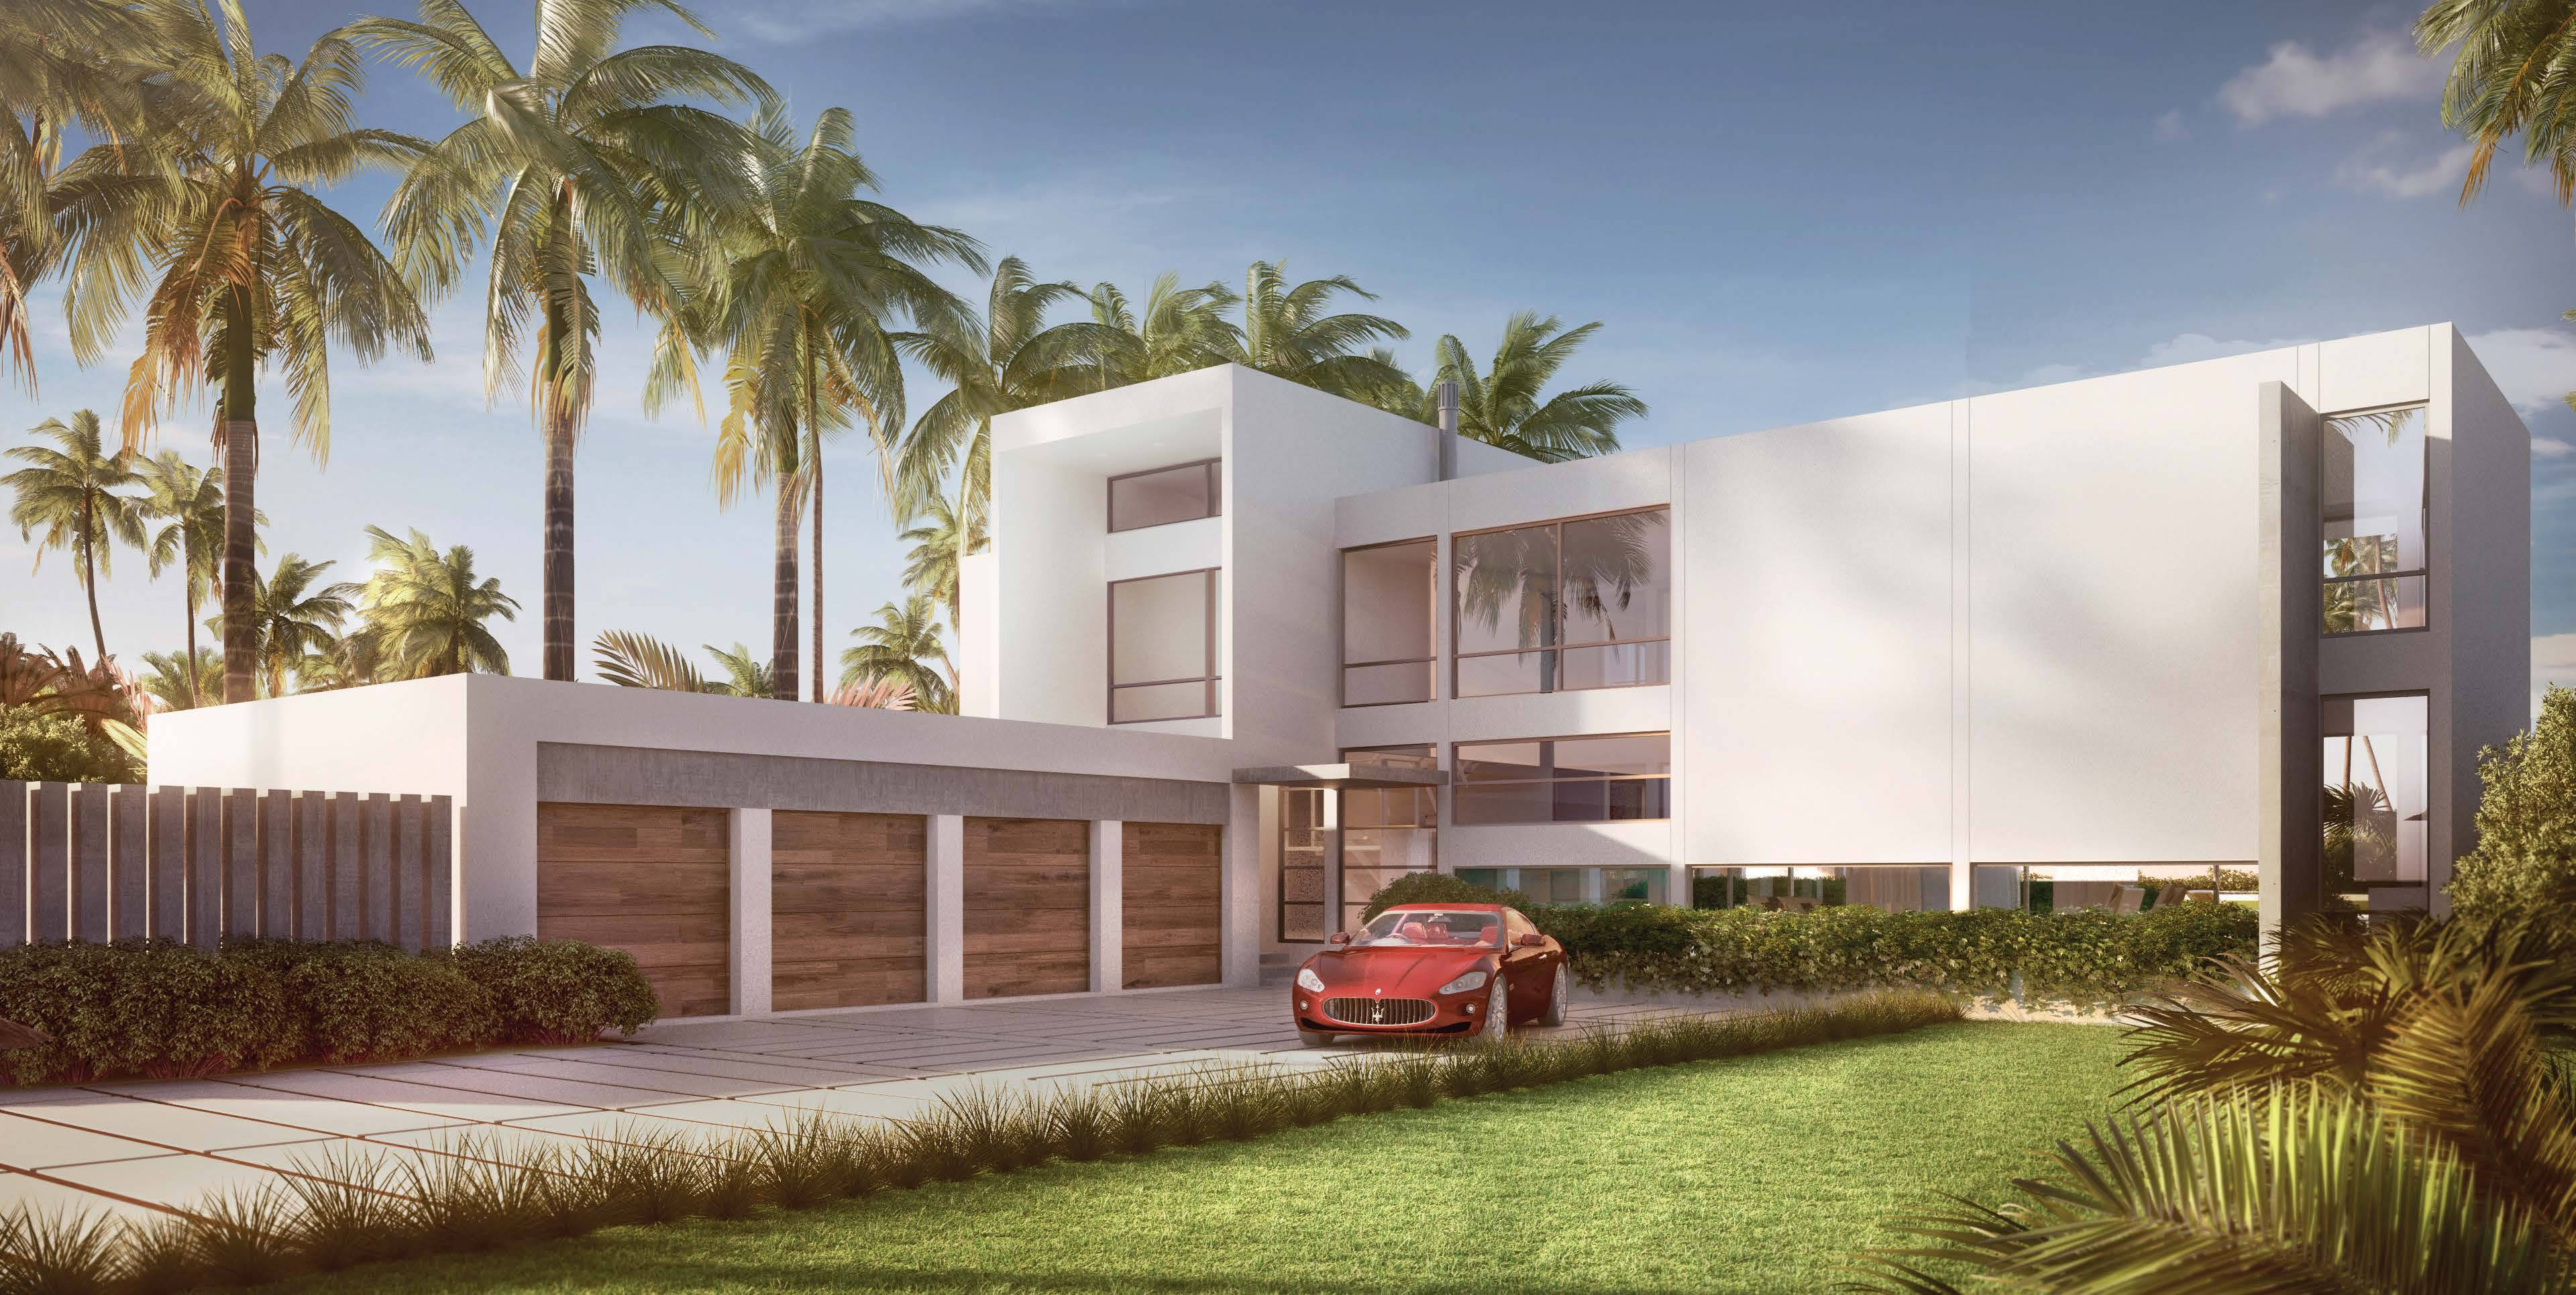 New construction in weston fl for Modern homes in florida